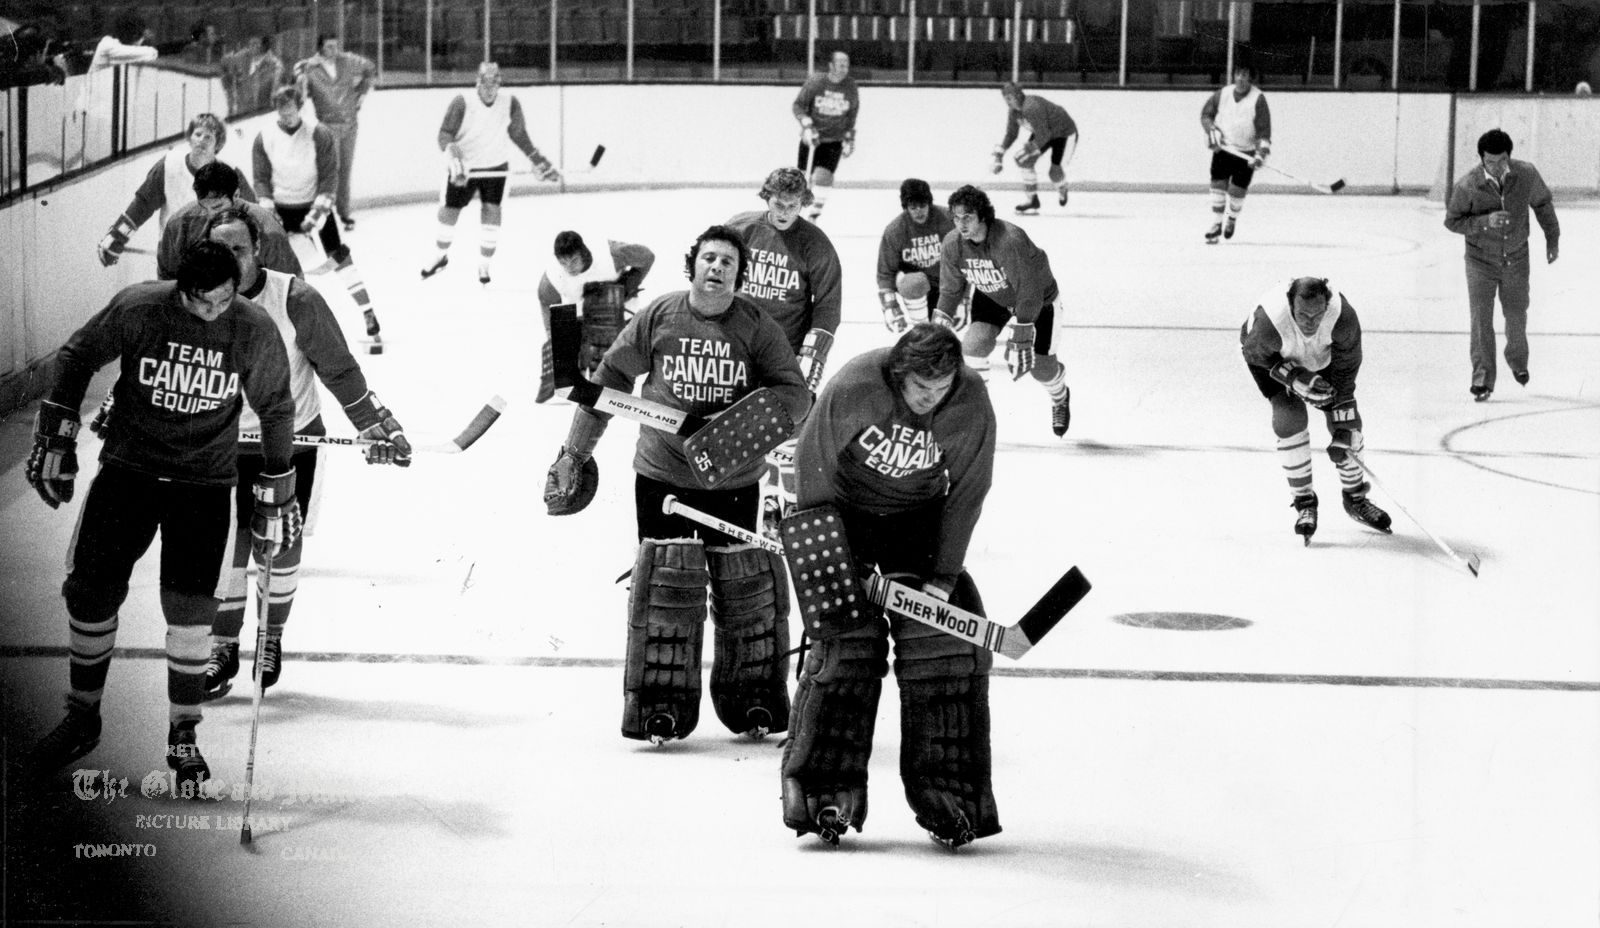 AUGUST 14, 1972 -- TORONTO -- TEAM CANADA TRAINING CAMP -- Jocelyn Guevremont, Vancouver Canucks (left); and goaltenders, Tony Esposito, Chicago and Ken Dryden, Montreal, lead Team Canada players around the boards in opening workout of Team Canada, August 14, 1972 in Toronto. Behind Guevremont are, Dennis Hull, Frank Mahovlich, Pat Stapleton, Wayne Cashman, Gord Berenson and John Ferguson, assistant coach. Following Esposito, Bobby Clark, Michel Larocque (kneeling), Gary Bergman. Behind Dryden, Bill Harris, Dale Tallon and Vic Hadfield. Series starts Sept. 2, 1972 in Montreal. Photo by Barrie Davis / The Globe and Mail. Originally published August 15, 1972